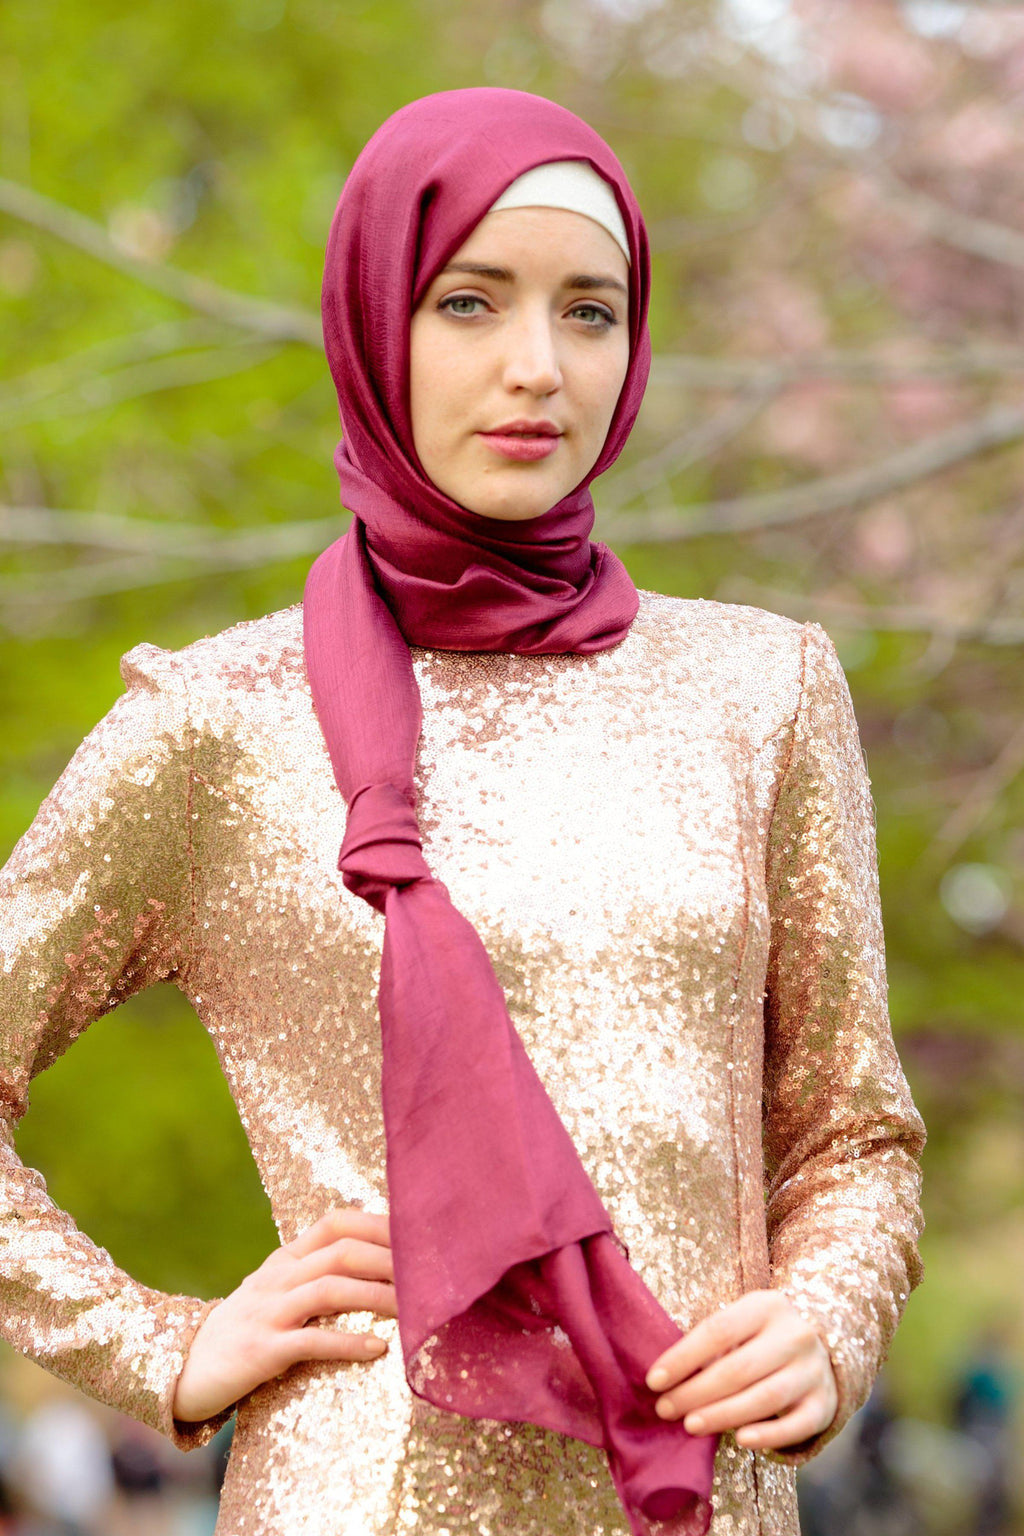 Berry Shimmer Hijab Head Scarf - Abaya, Hijabs, Jilbabs, on sale now at UrbanModesty.com